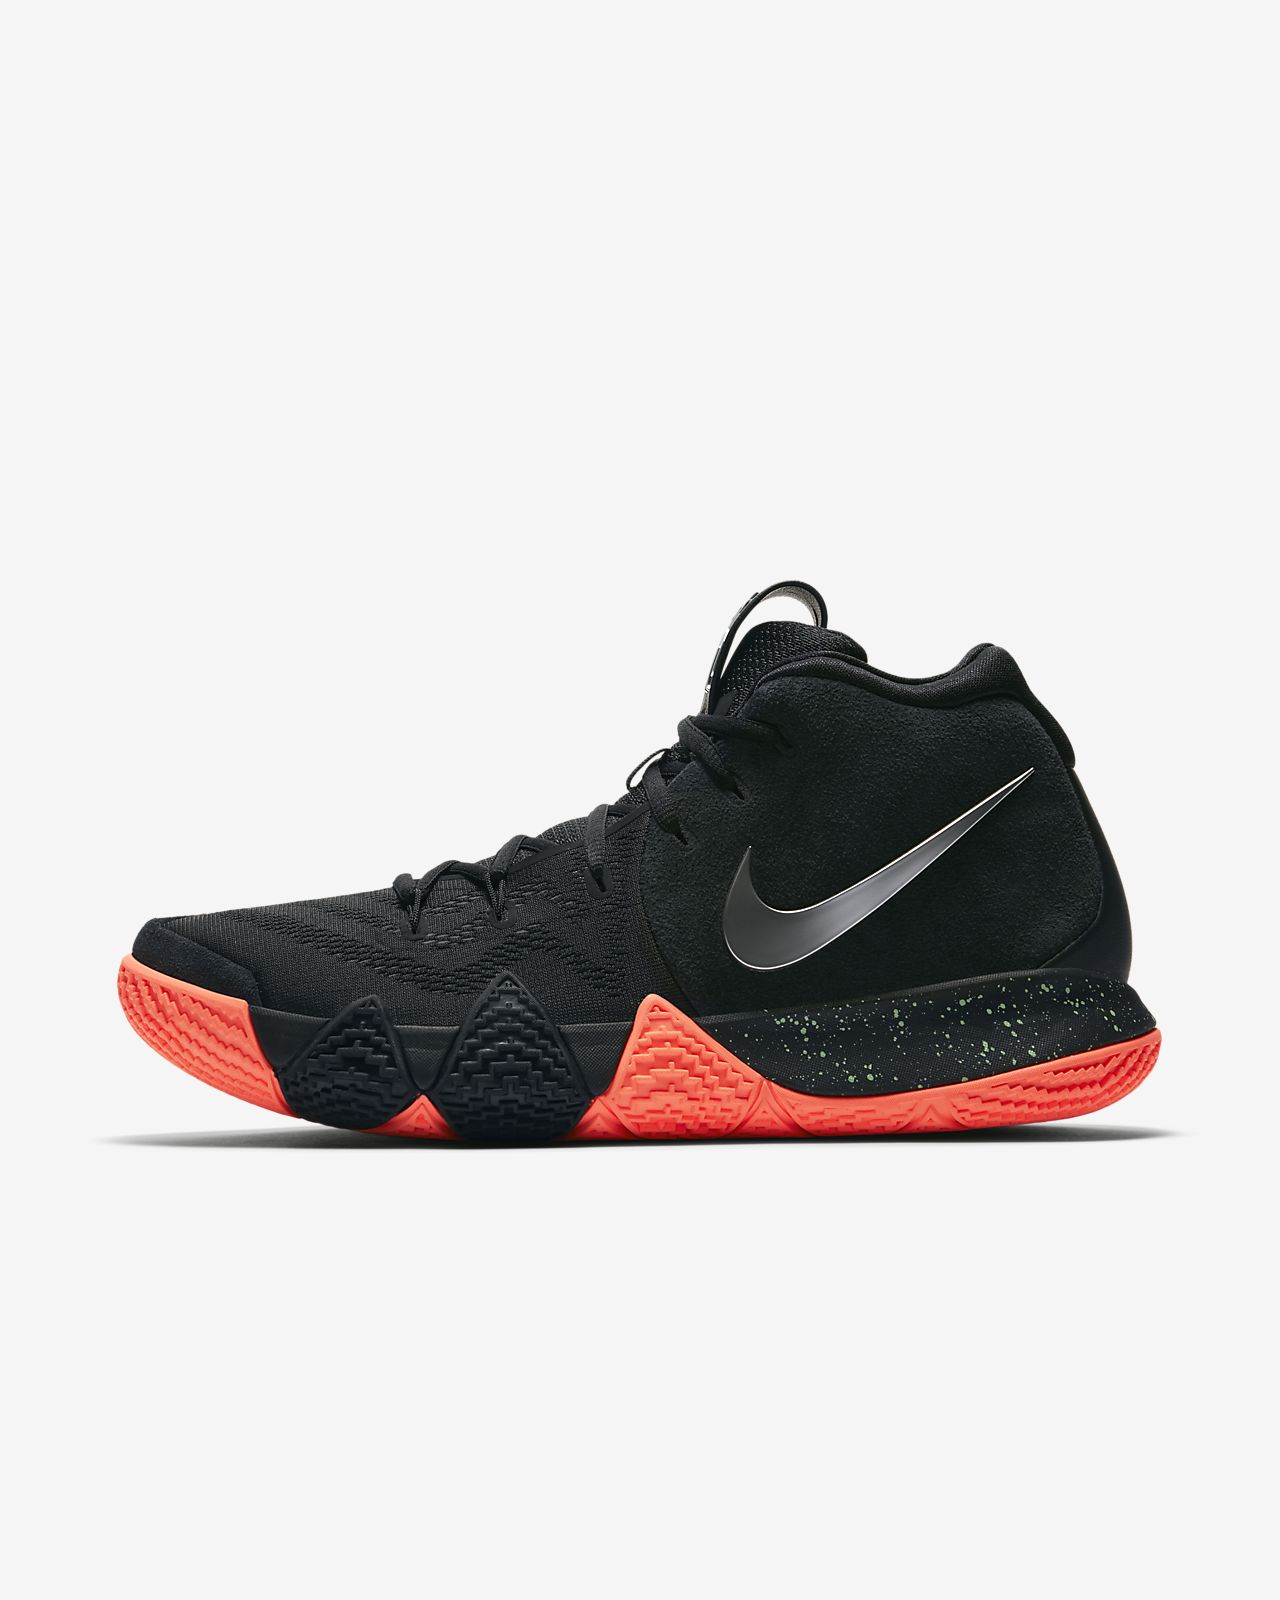 4c3c11b20537 ... where to buy kyrie 4 zapatillas de baloncesto ca881 2e1b5